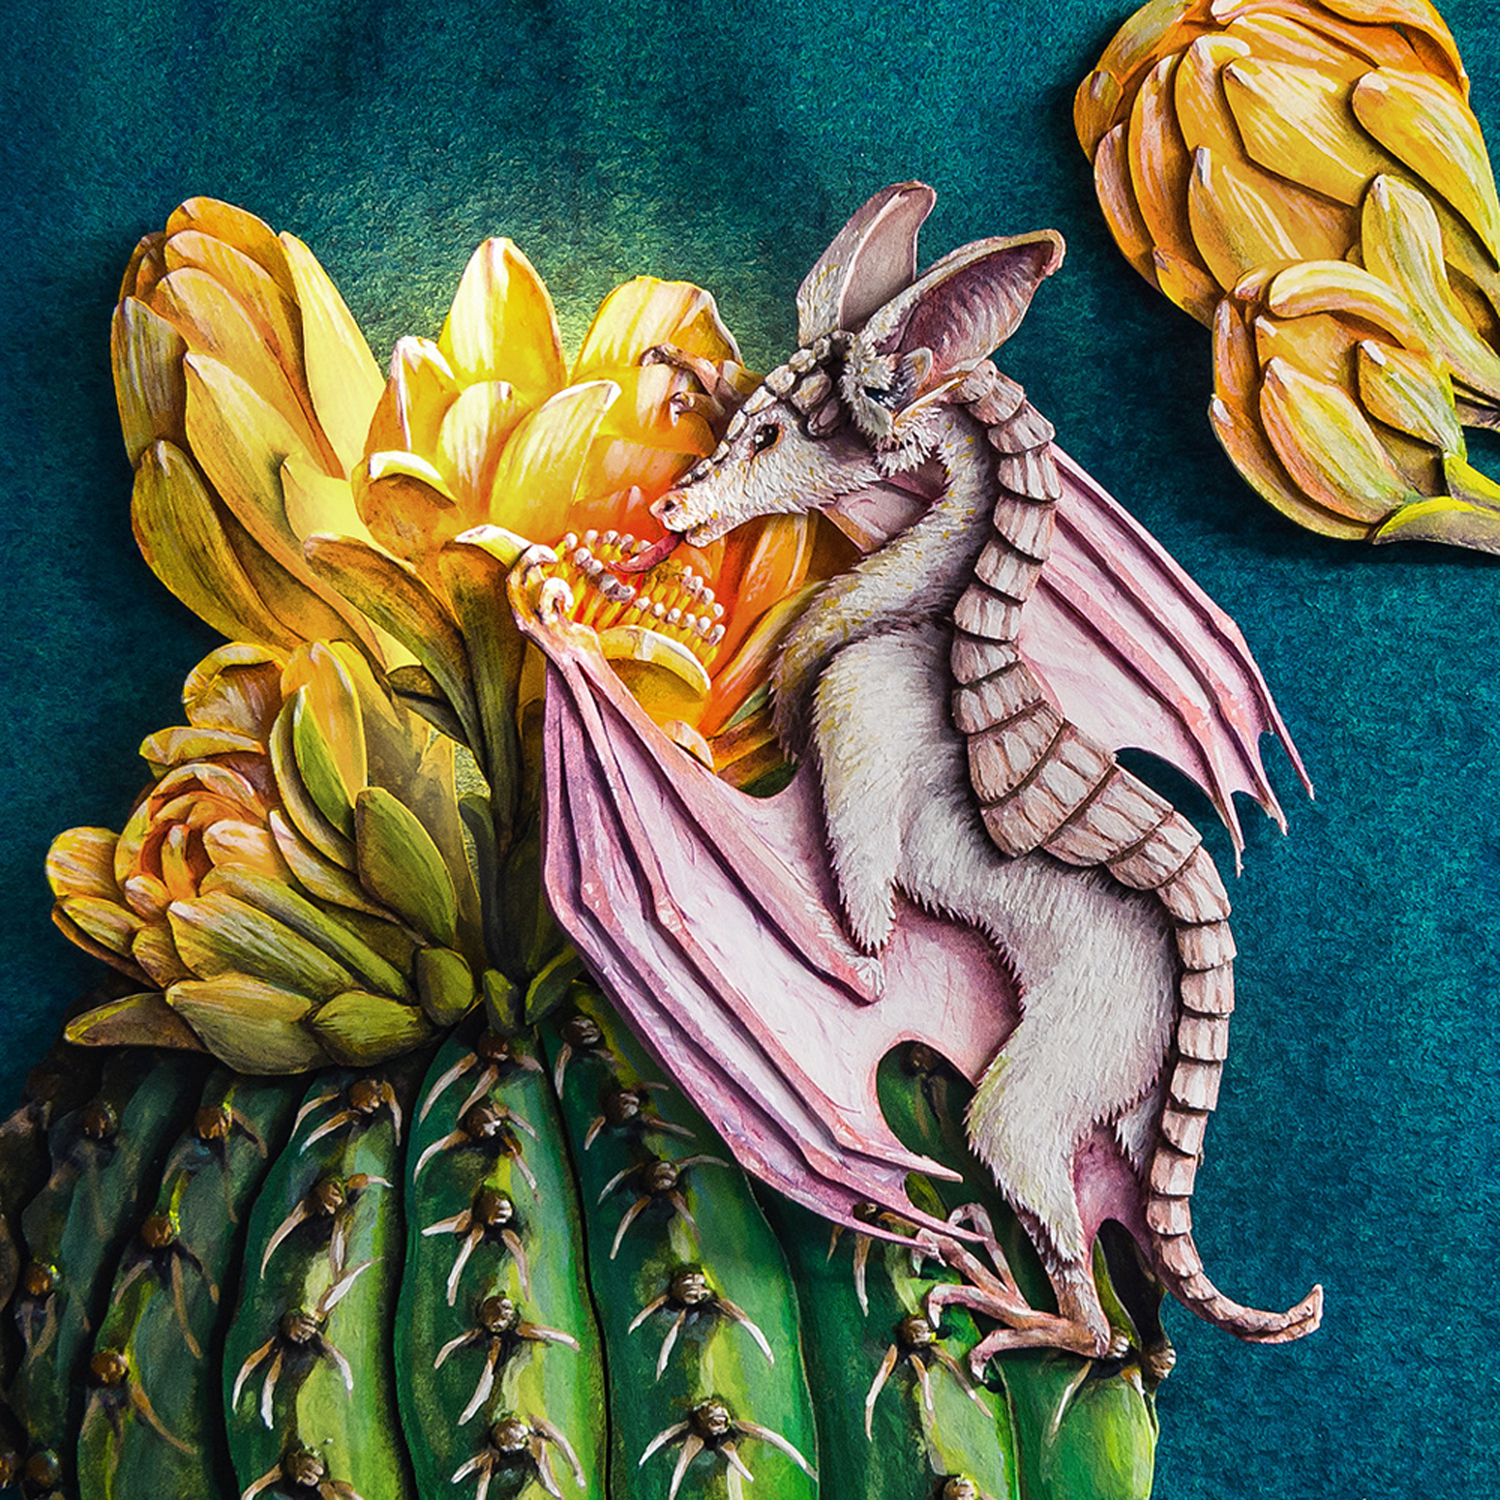 Cactus Dragon Artwork by Nicole Grosjean